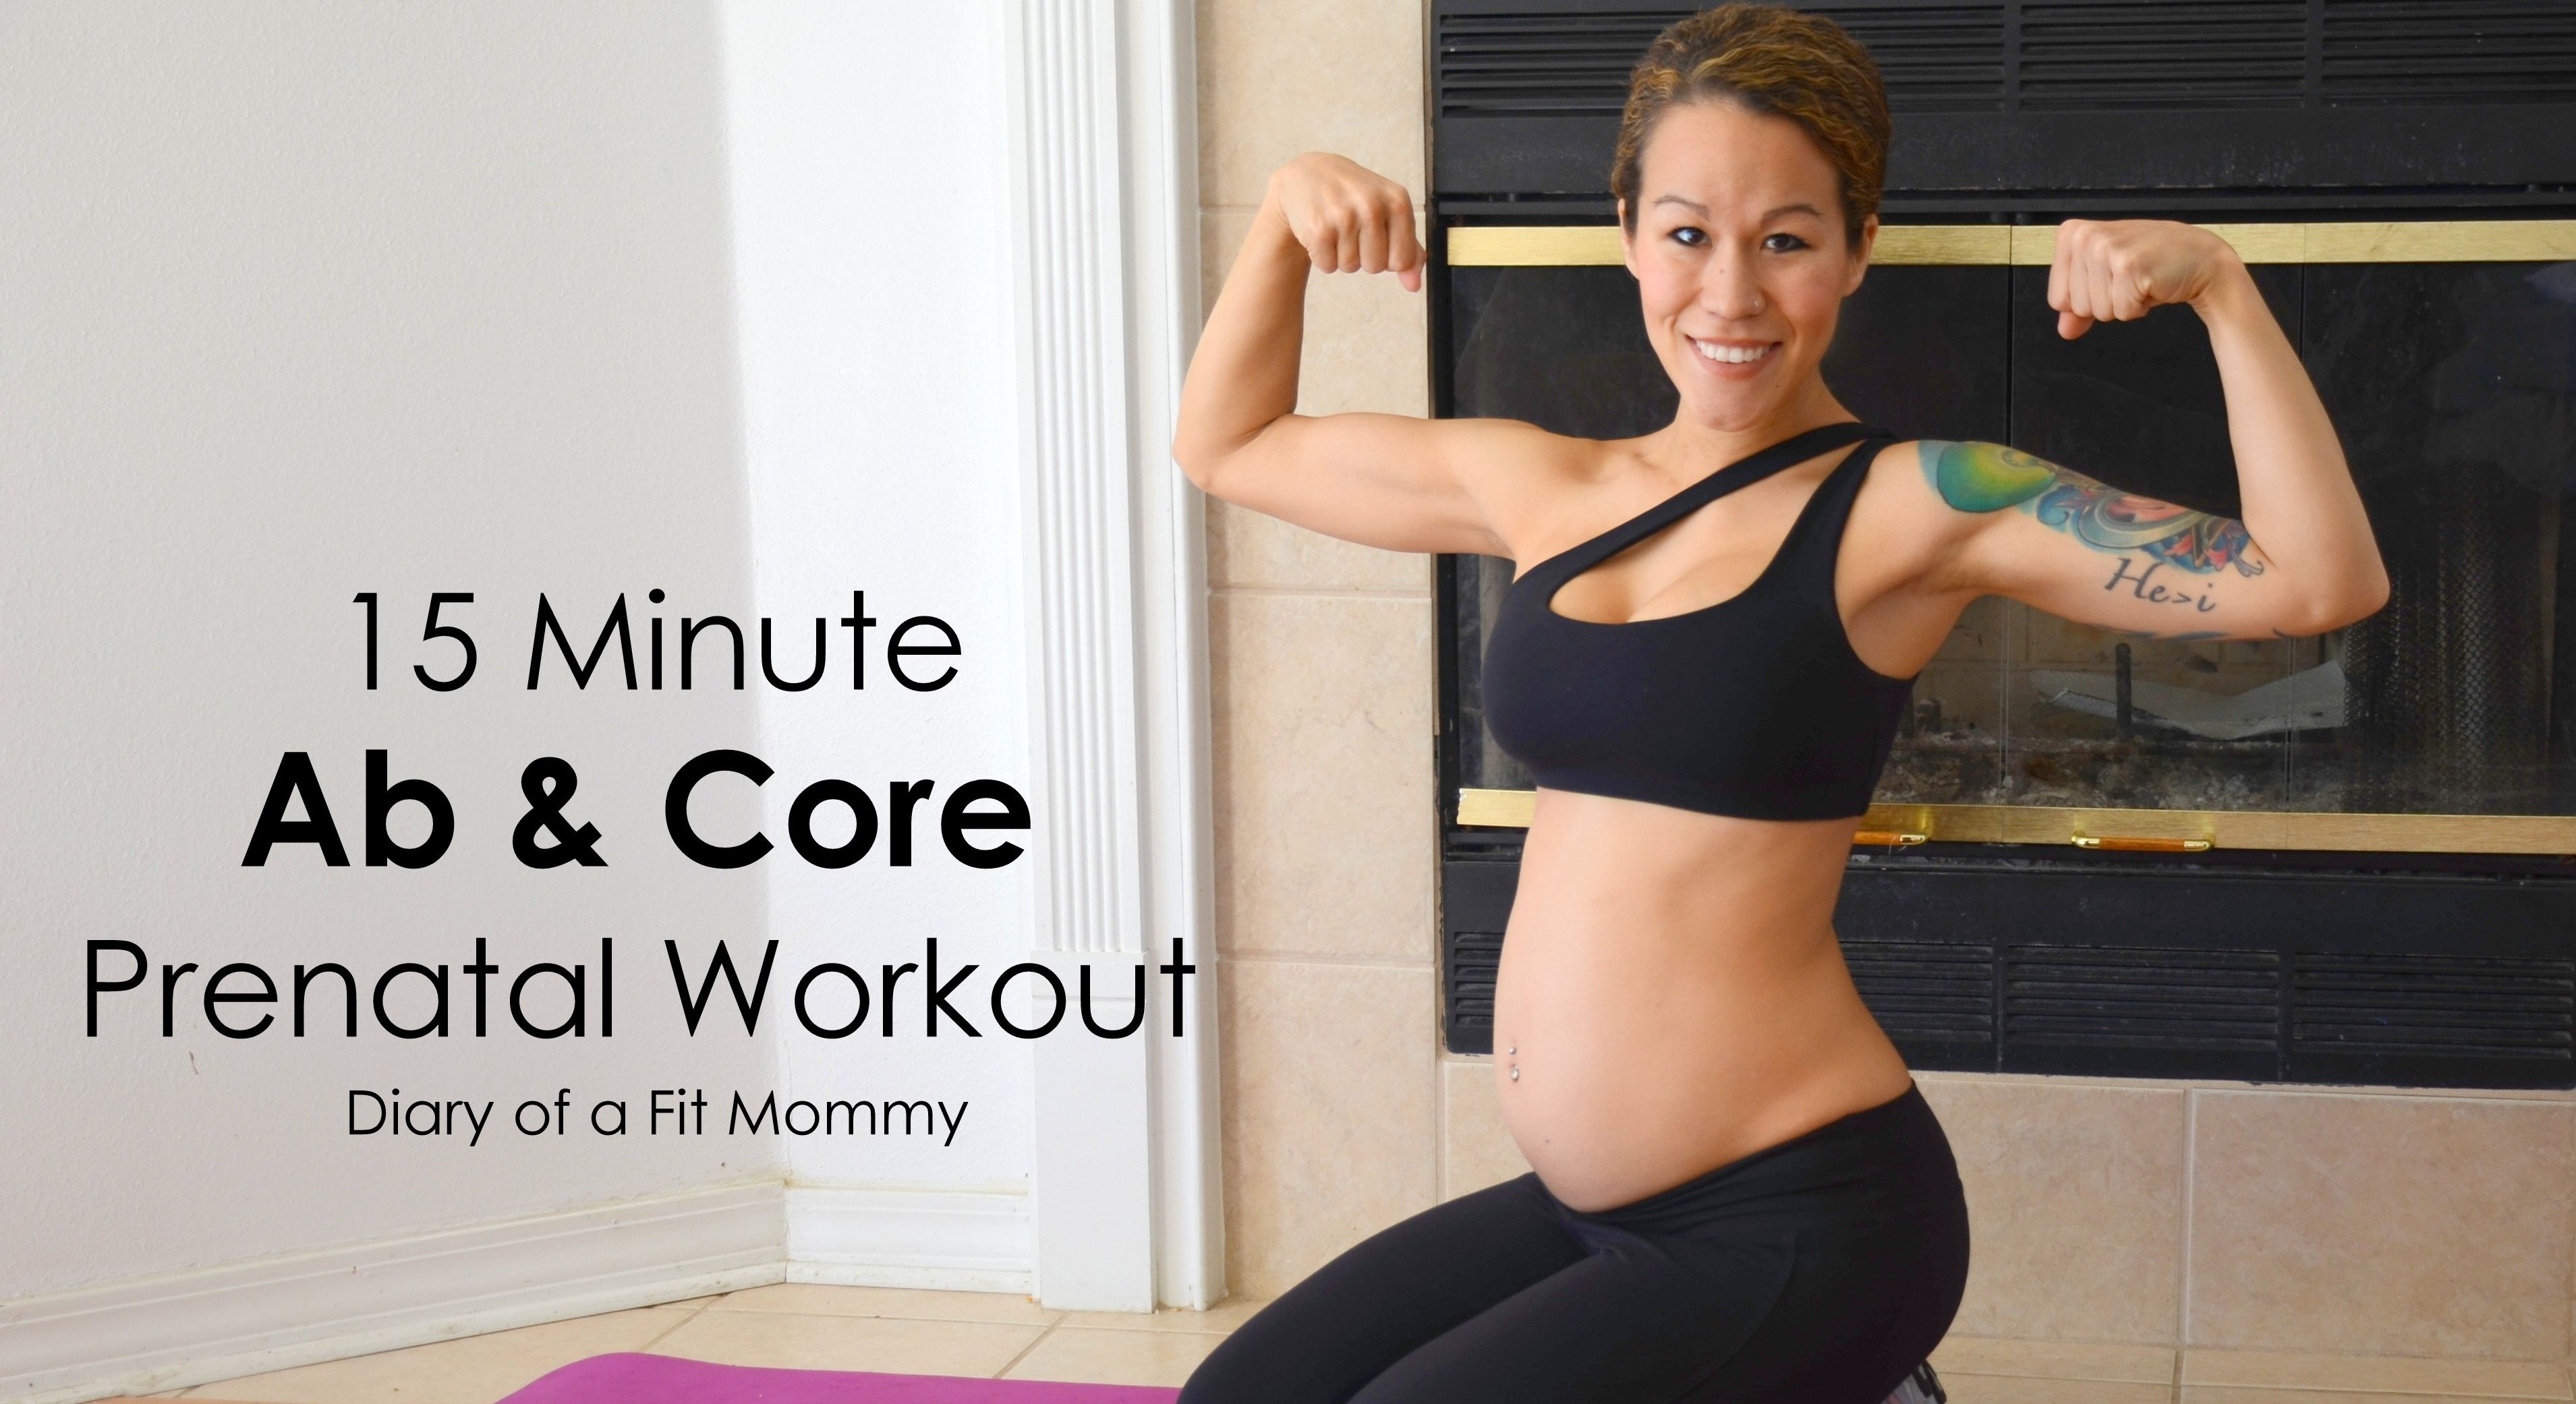 15 Minute Prenatal Abs & Core Workout - Diary of a Fit Mommy